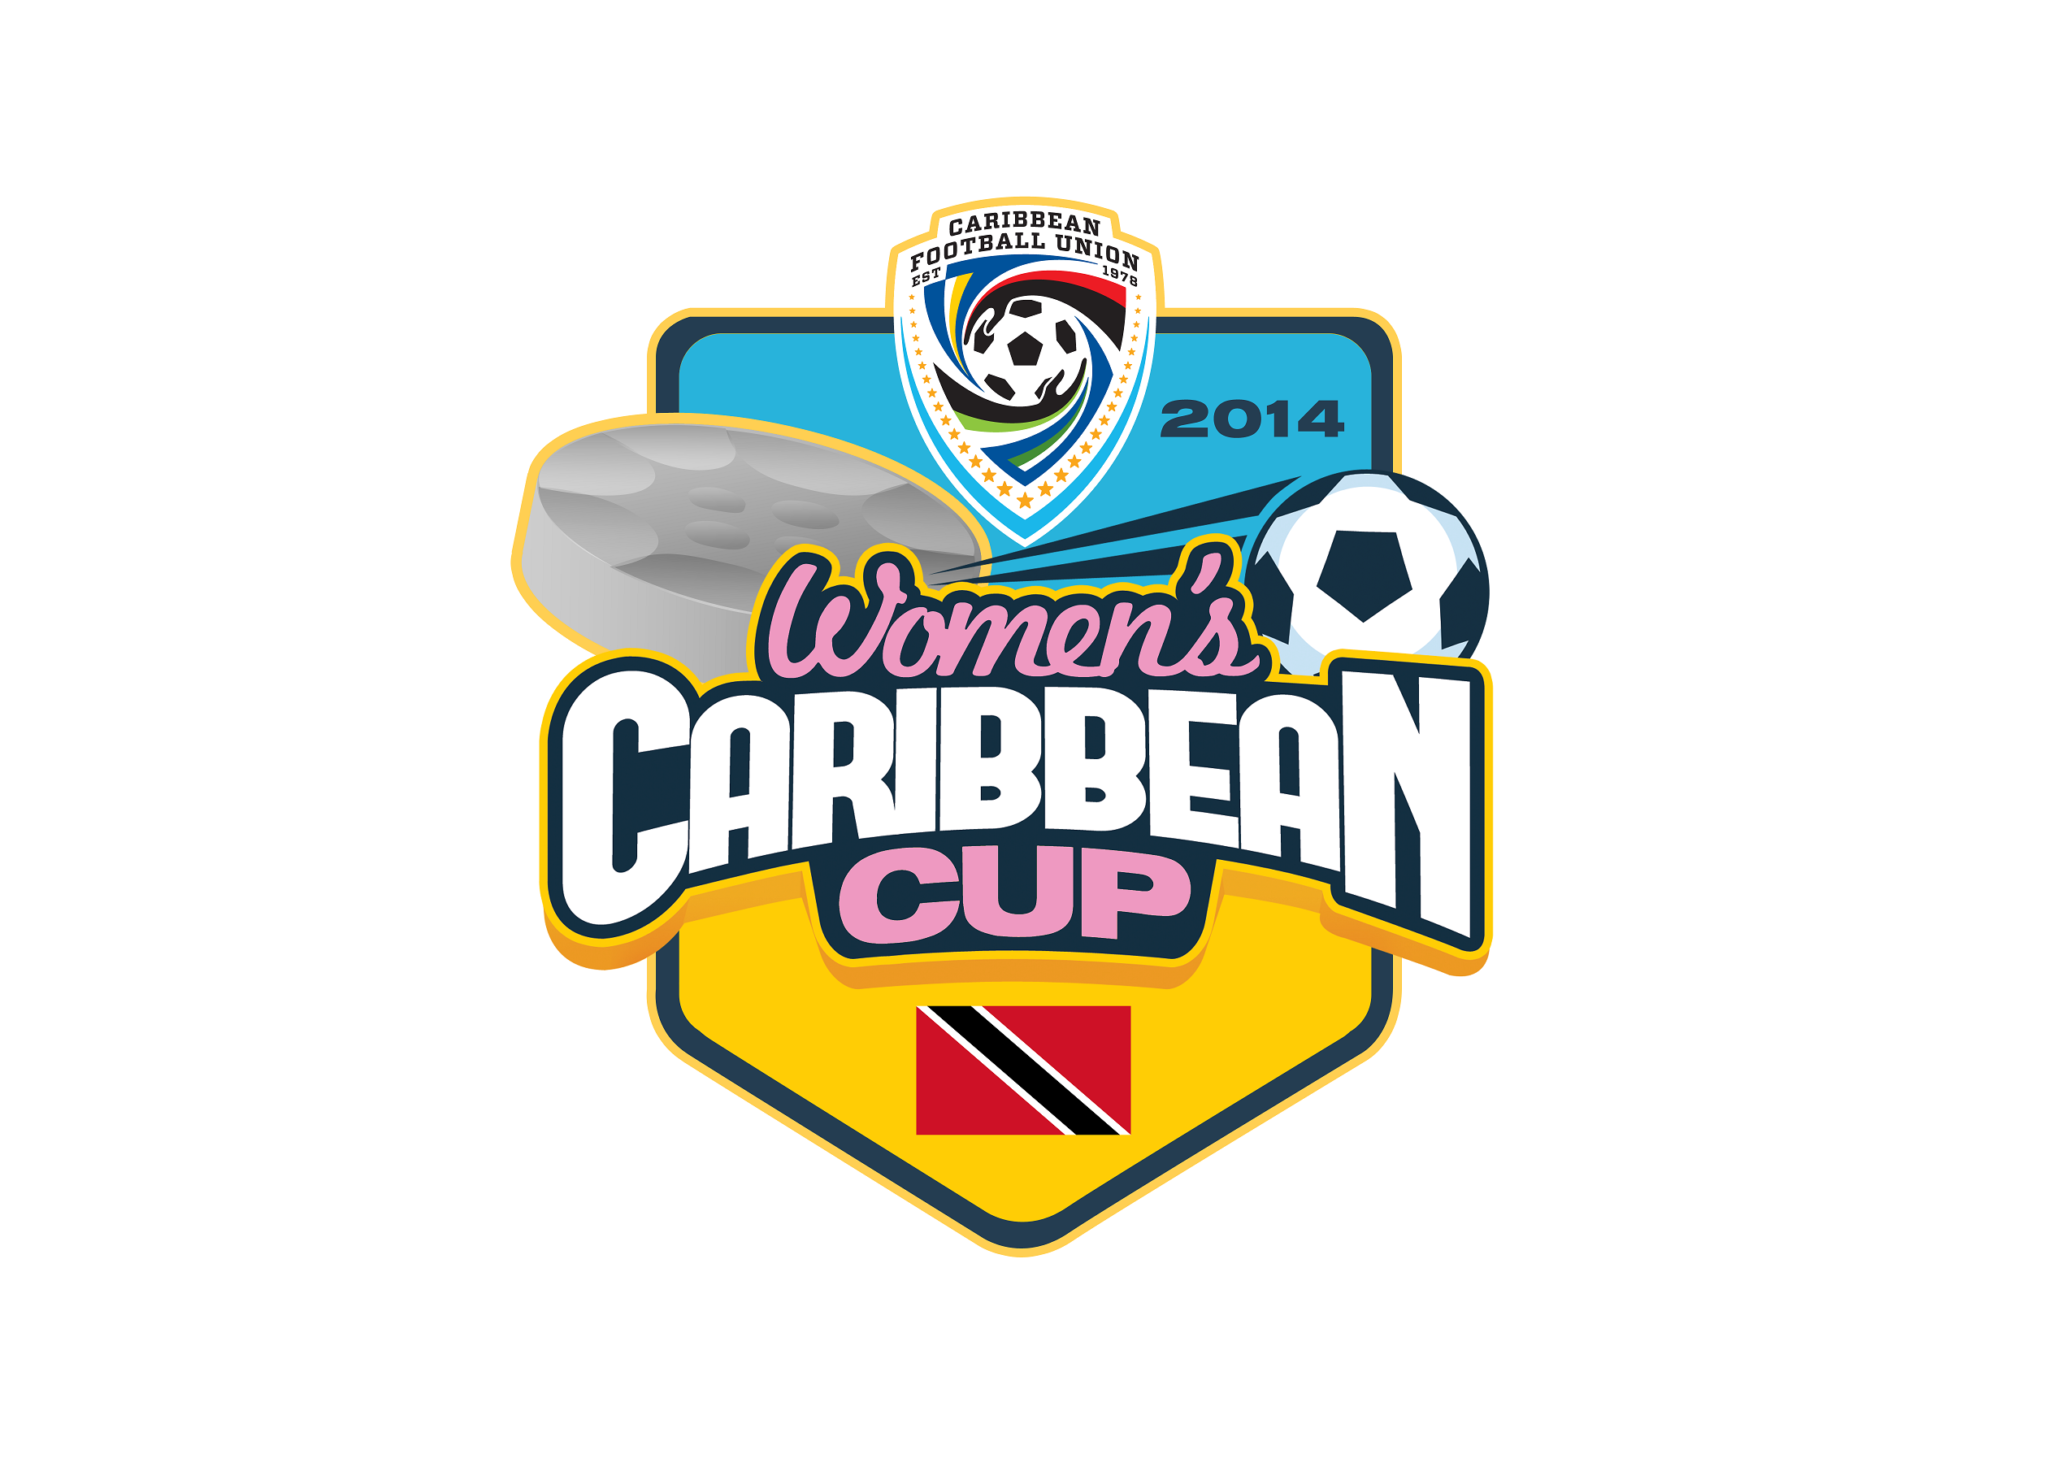 Four teams will advance from the Caribbean Cup to final CONCACAF qualification for the Women's World Cup.